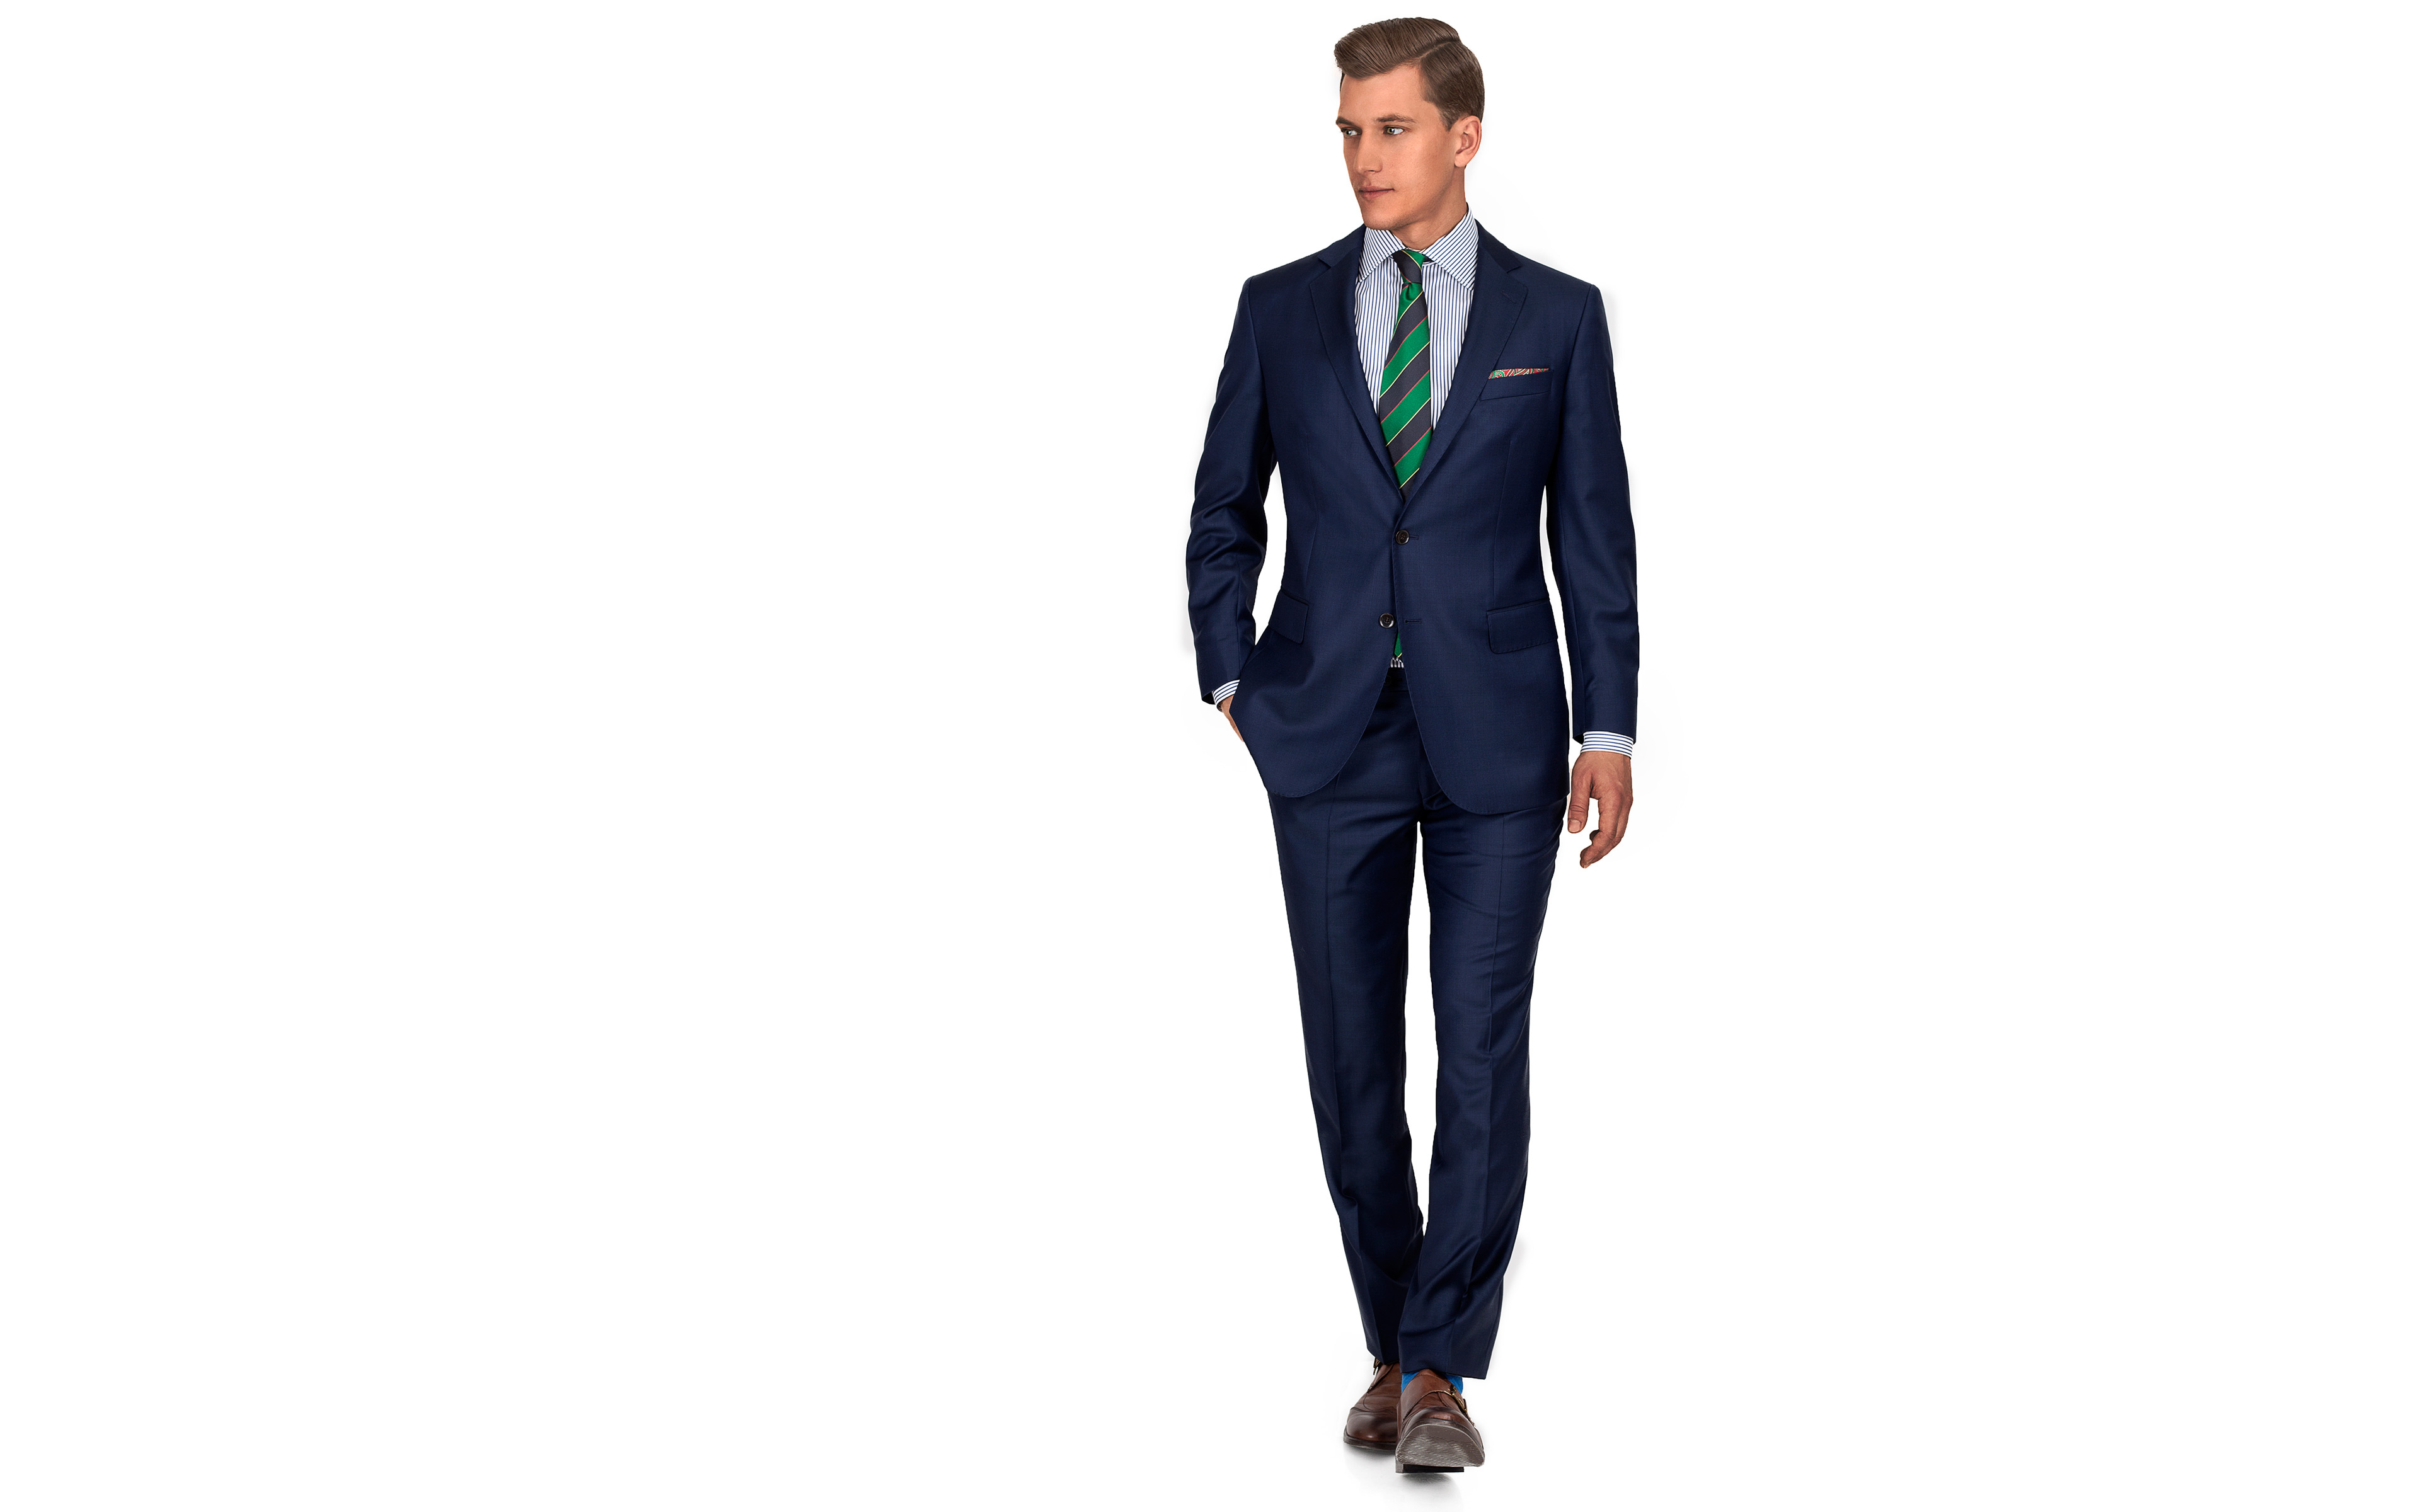 Suit in Navy Pick & Pick Wool